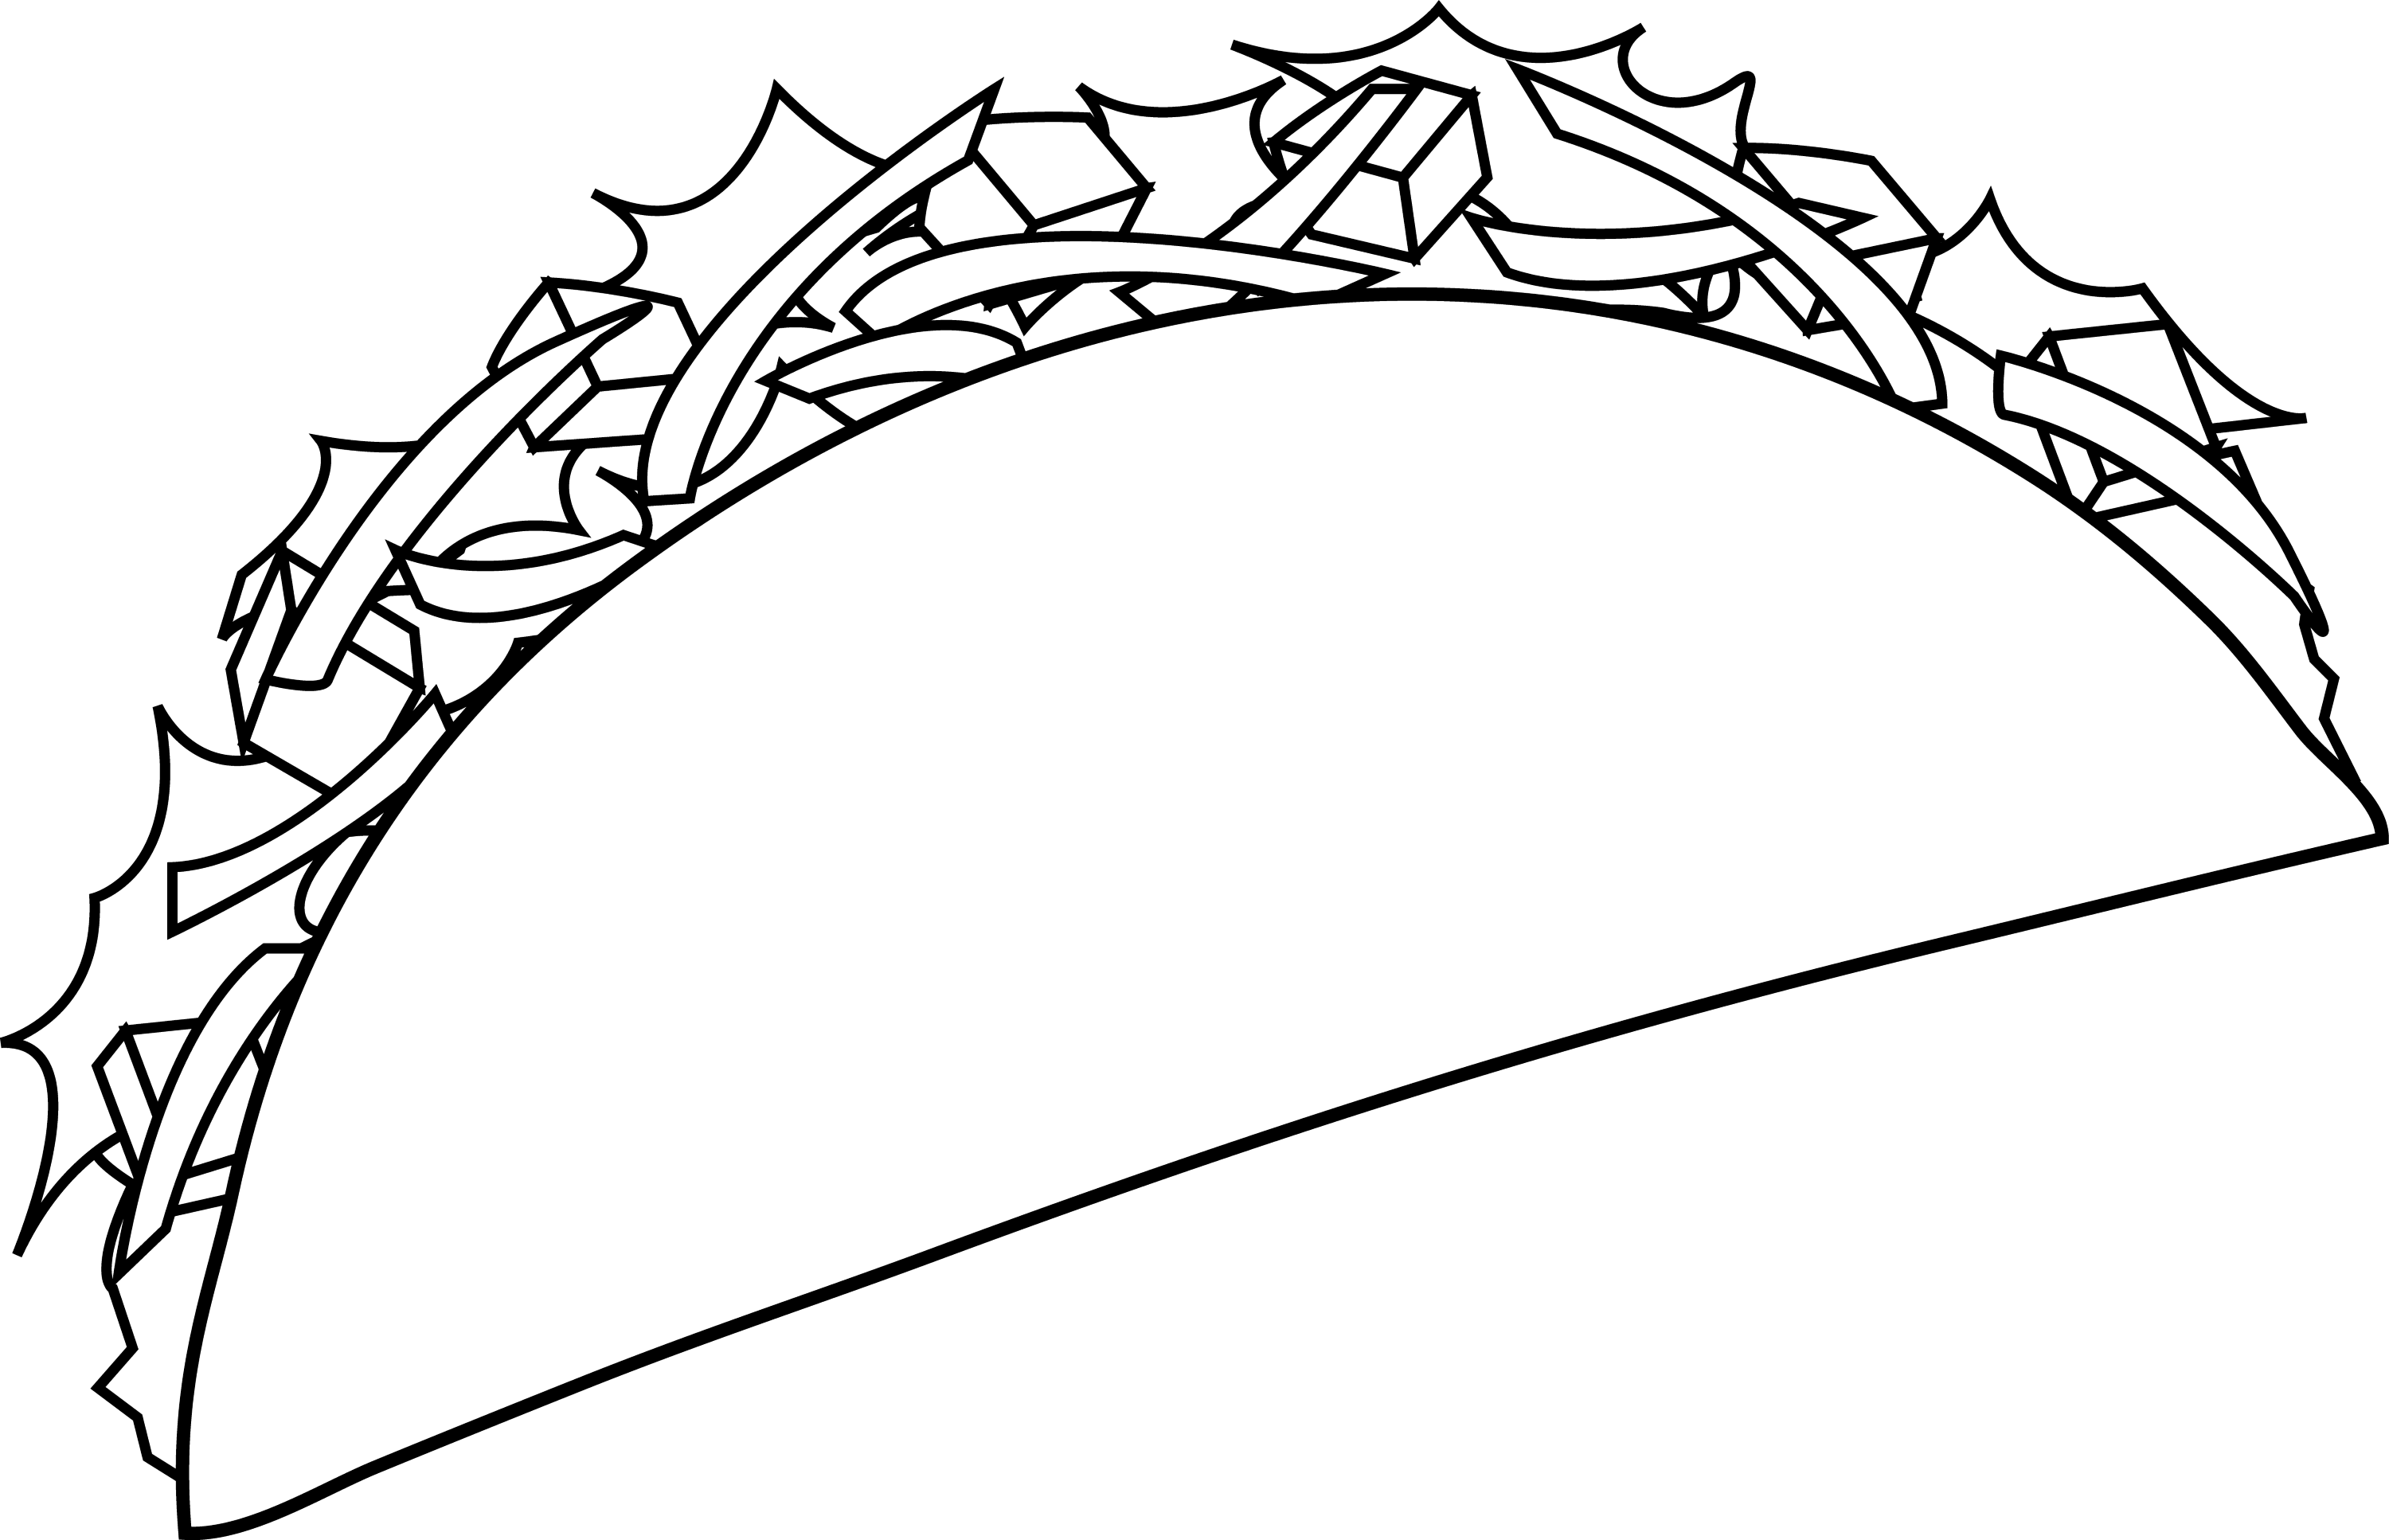 Colorable Taco Line Art - Free Clip Art